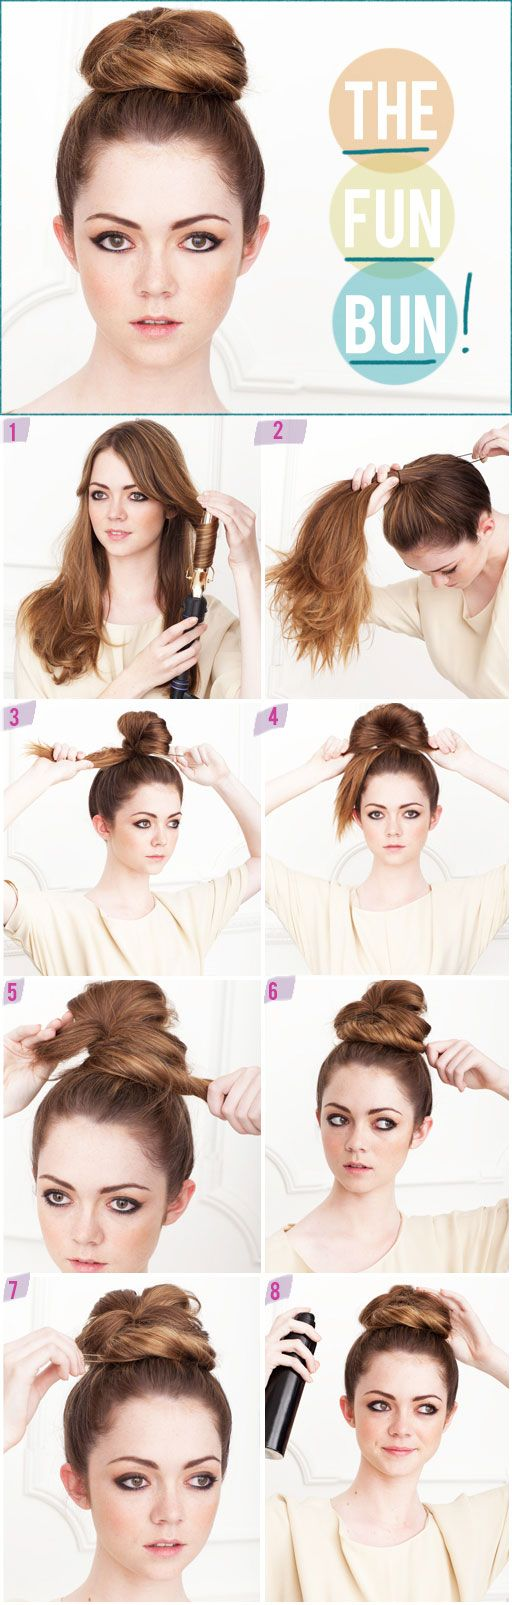 messy bunHair Ideas, Hair Tutorials, Fun Buns, Long Hair, Beautiful, Messy Buns, Hair Style, Hair Buns, High Bun